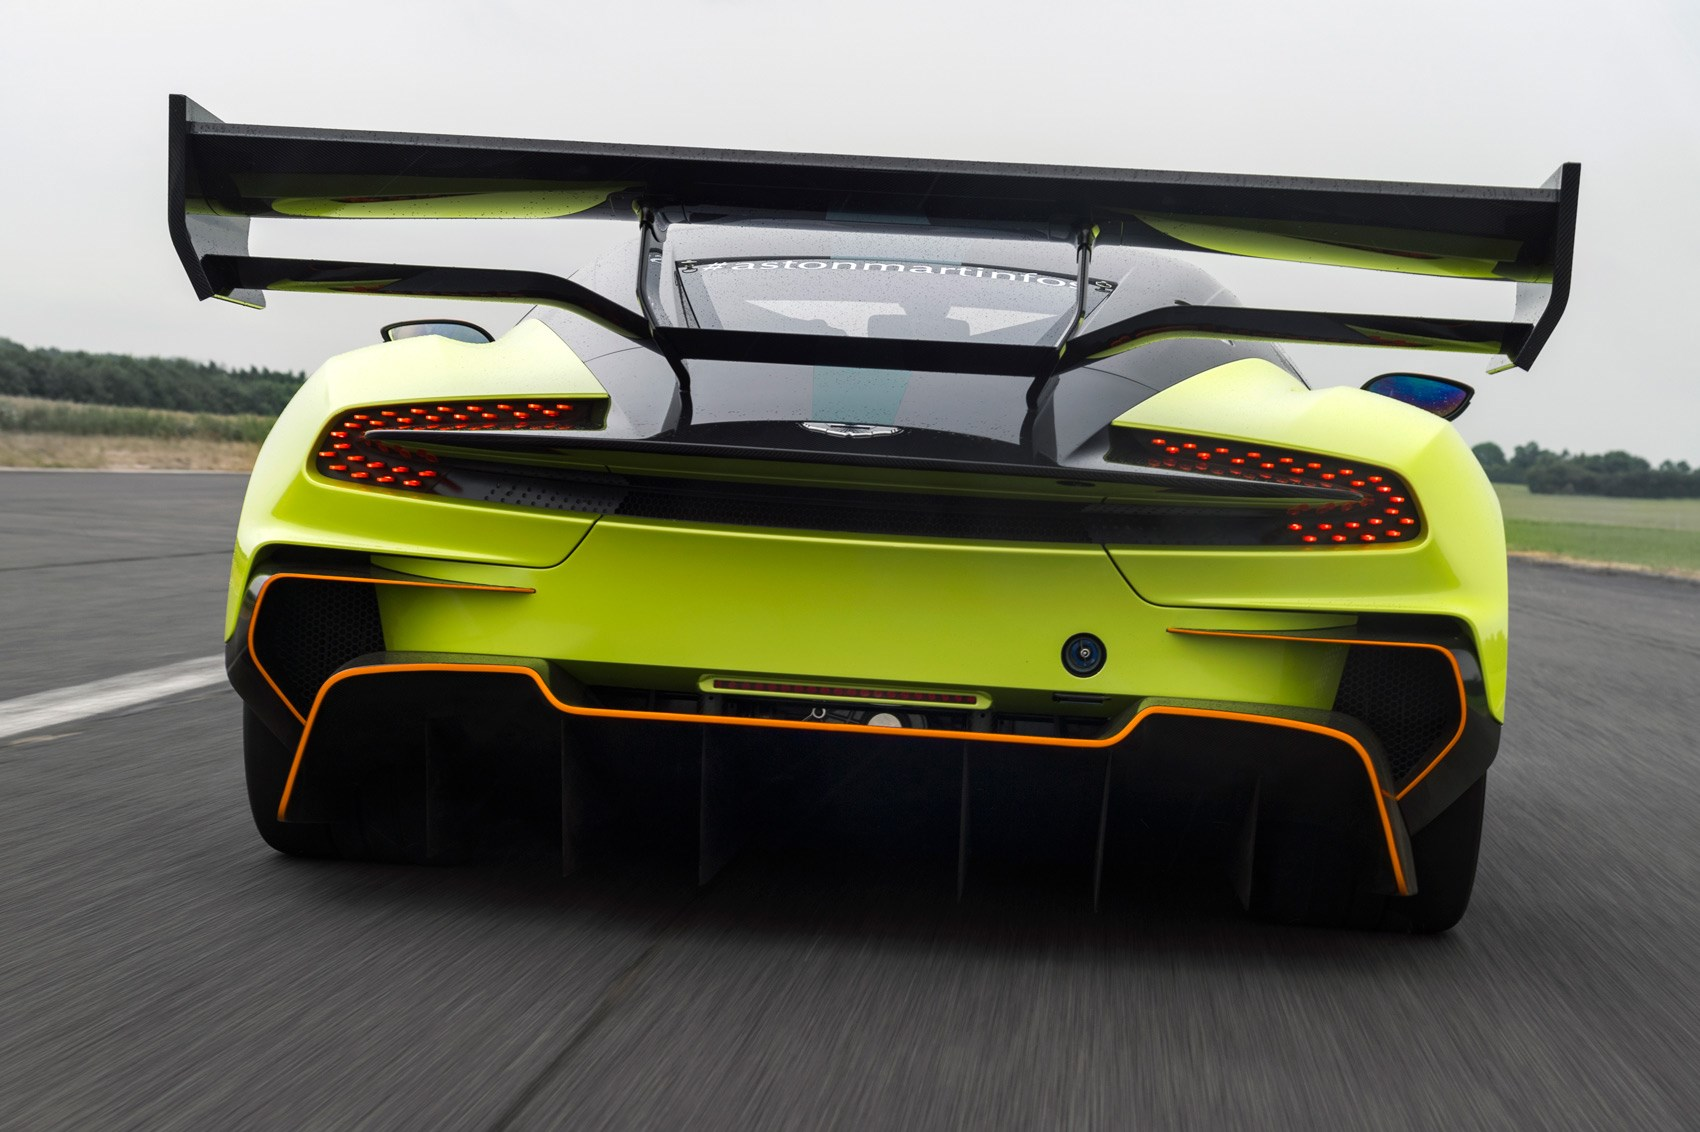 More Downforce Sir Aston Martin Vulcan Amr Pro Debuts At Goodwood